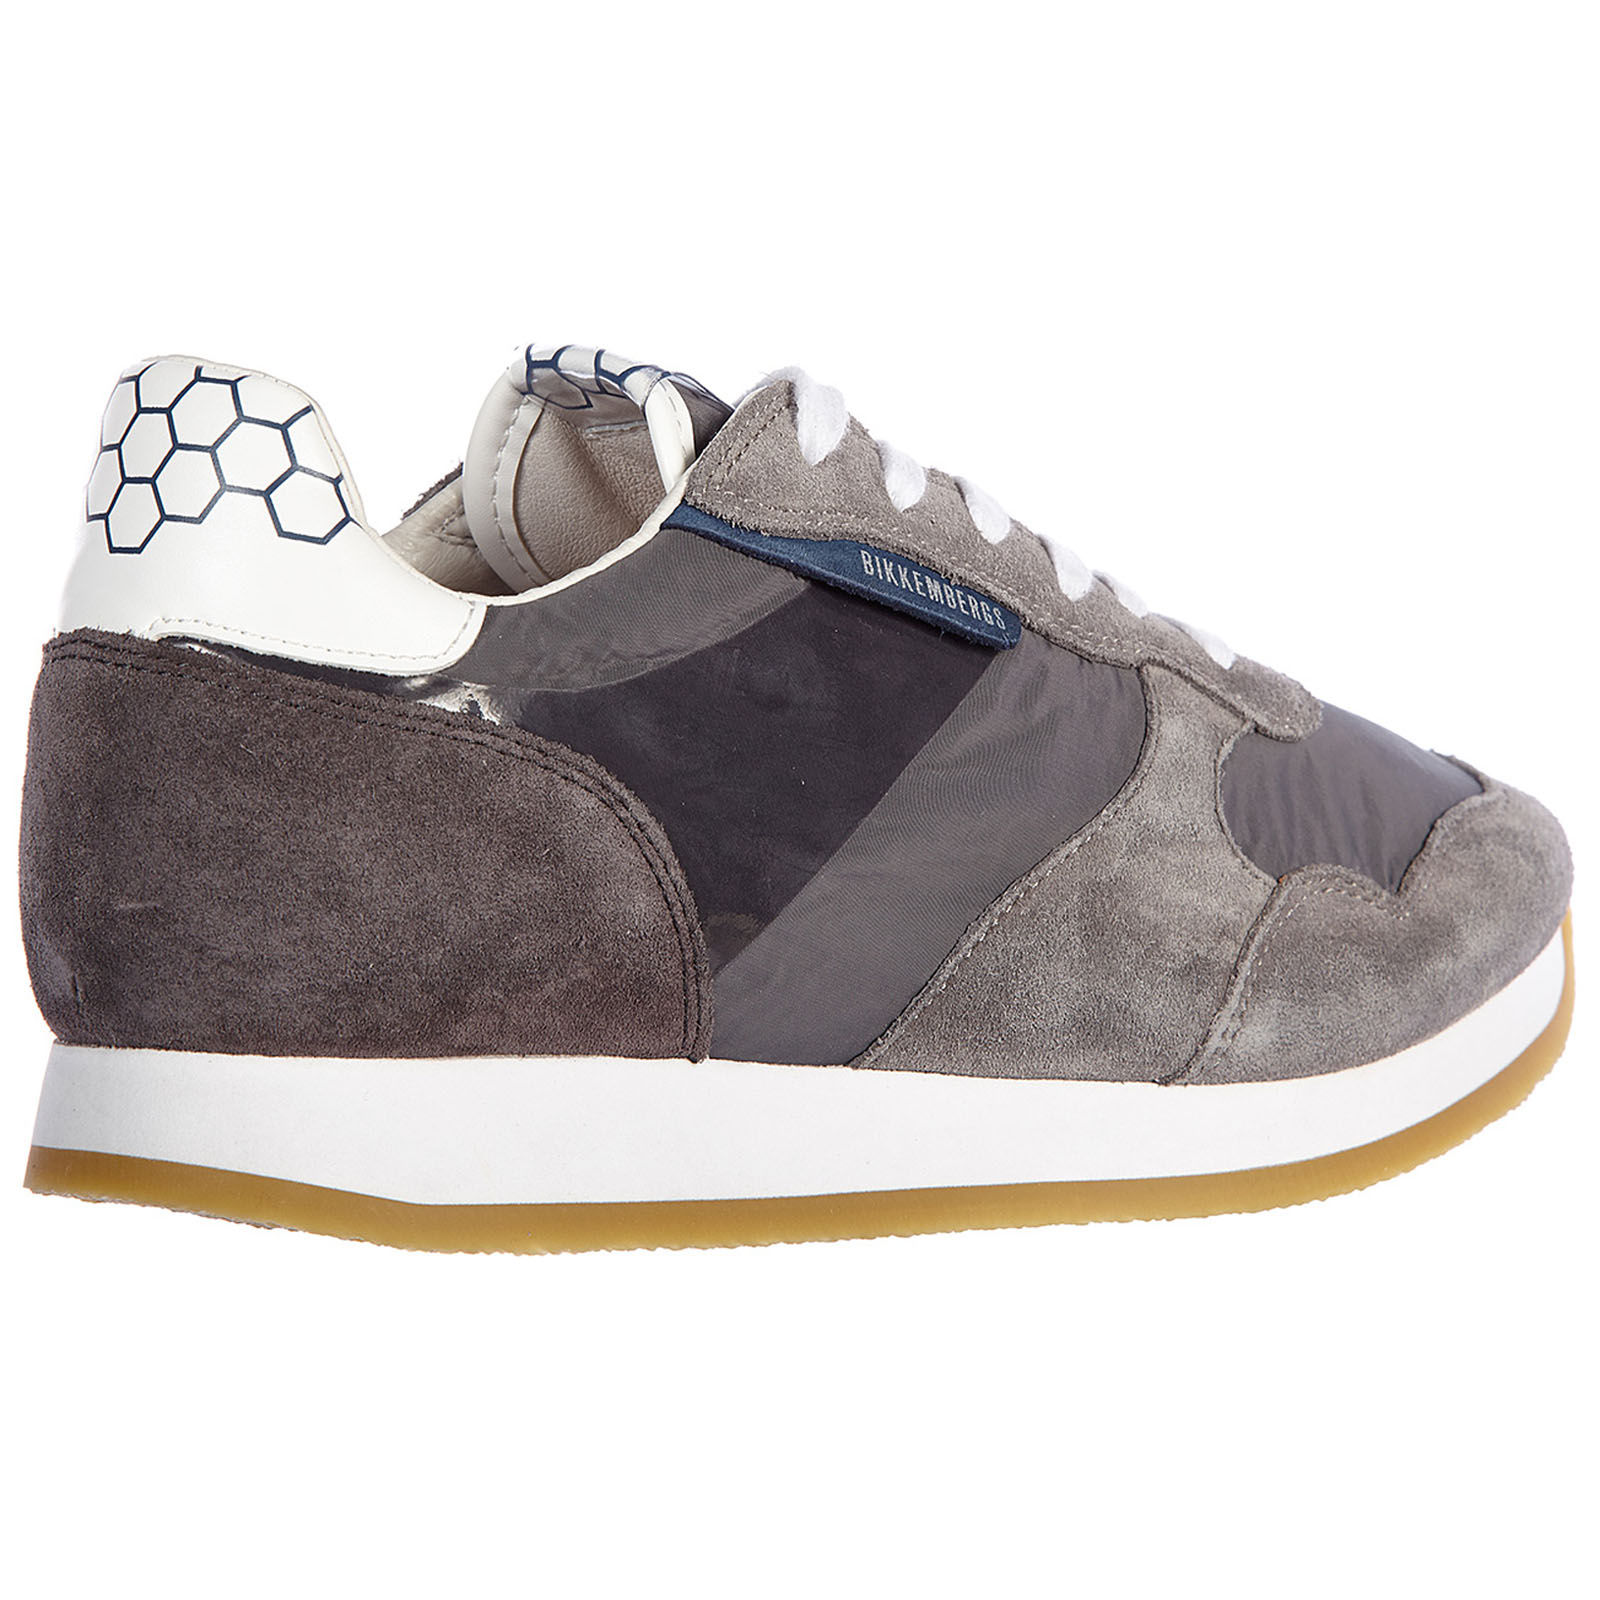 Men's shoes suede trainers sneakers endurance vintage